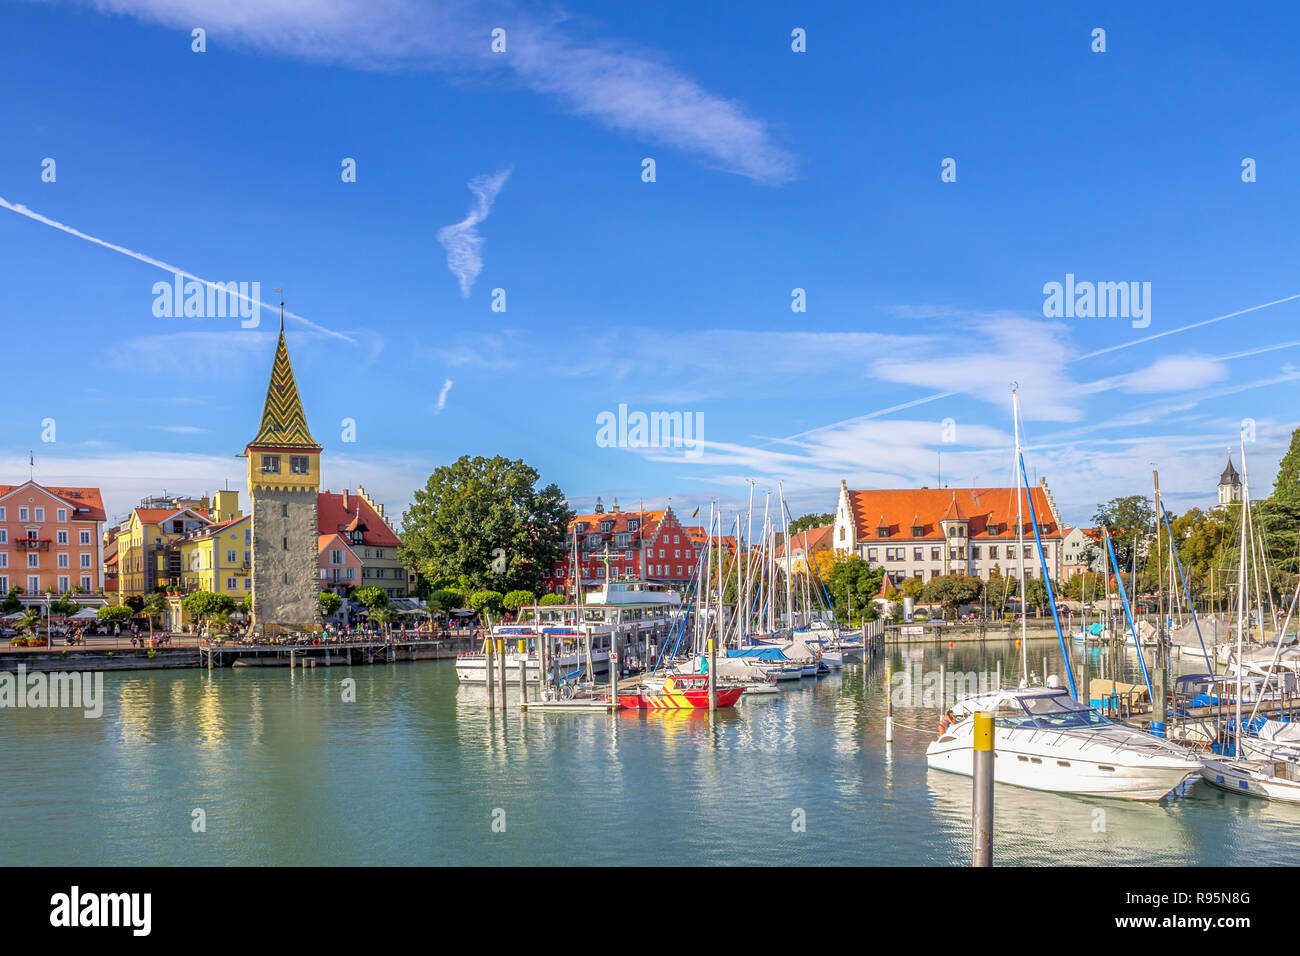 Lindau am Bodensee, Lake Constance, Germany Stock Photo